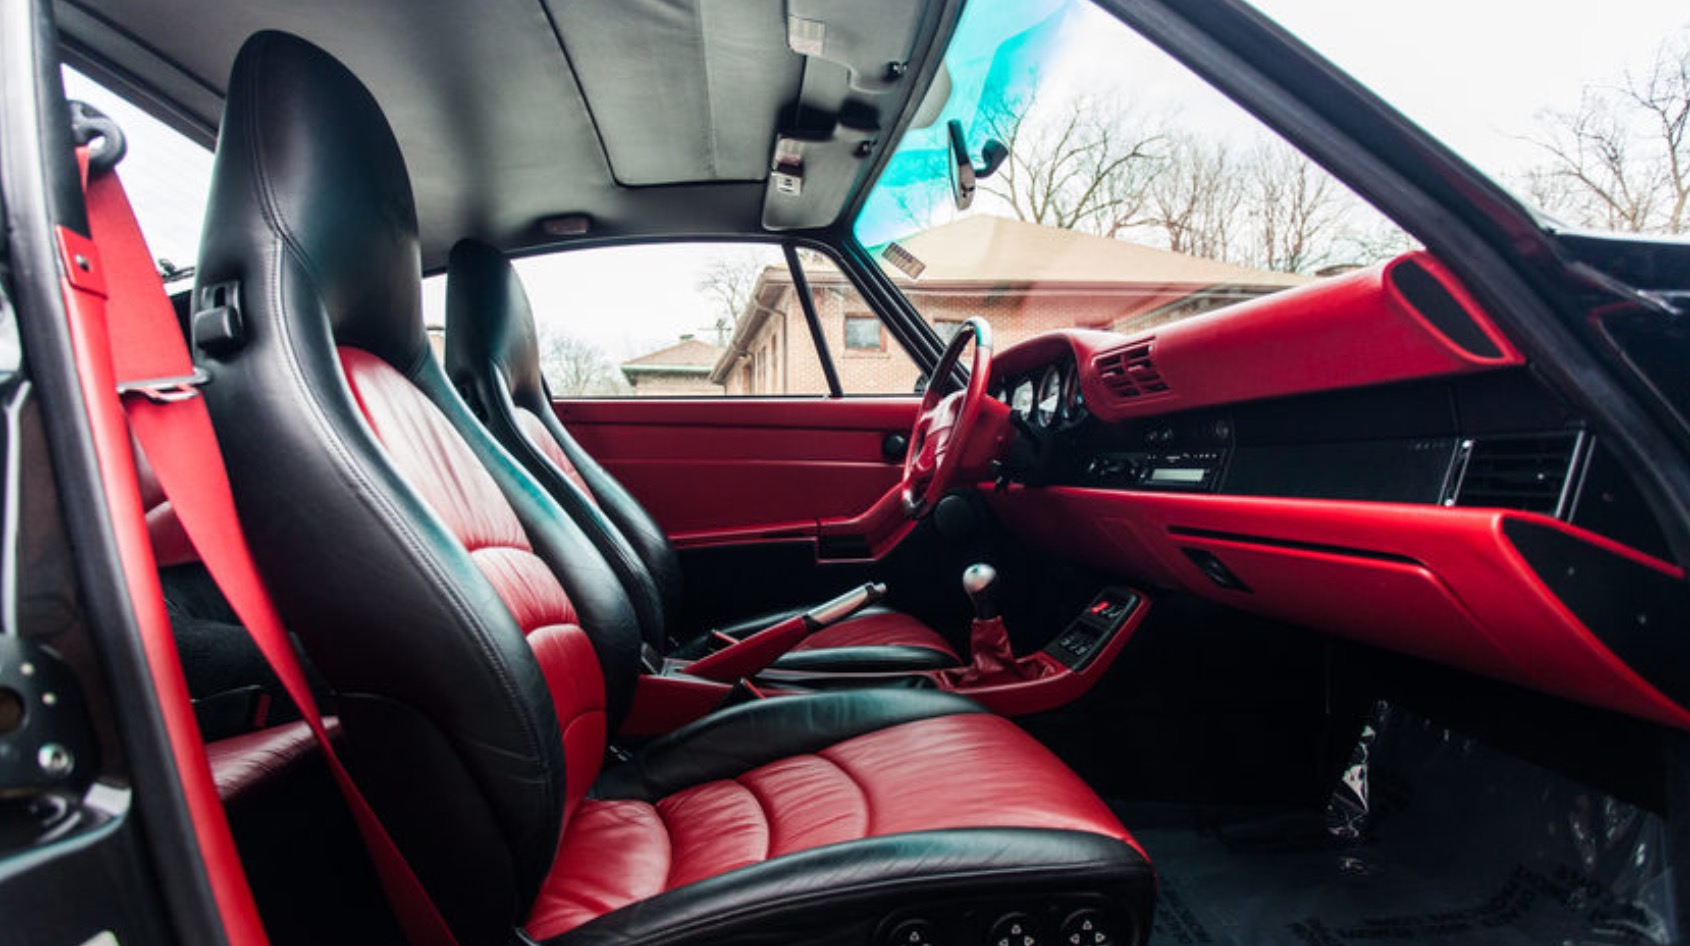 Used-1997-Porsche-911-Turbo-993-Coupe-Only-17k-Miles-RARE-Black-with-Boxster-Red-Interior-Servic